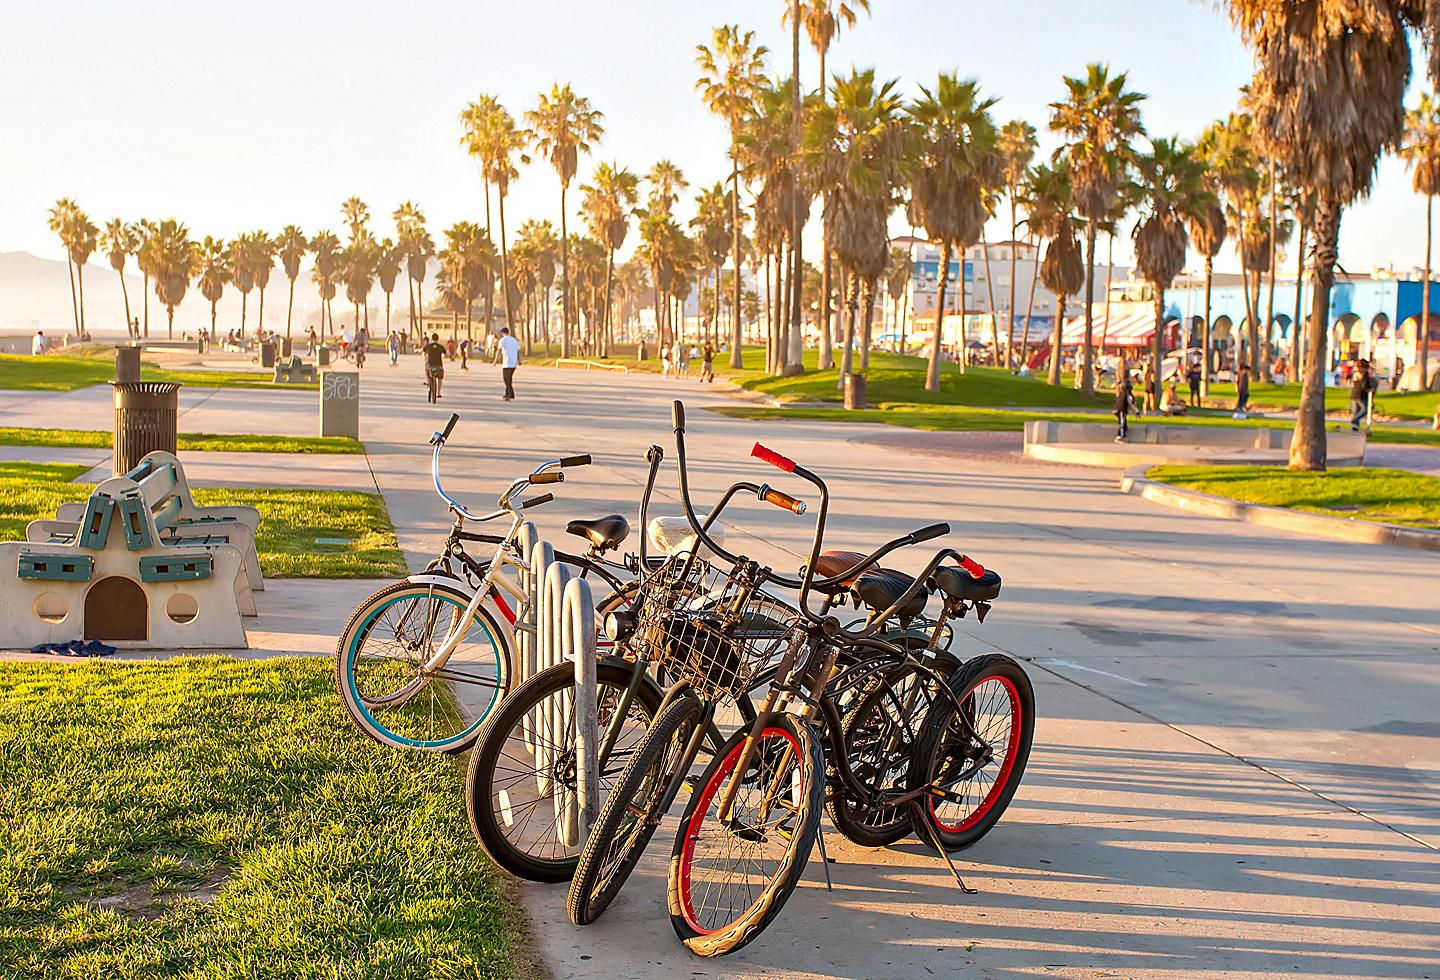 Bicycles on Venice Beach in Los Angeles, California